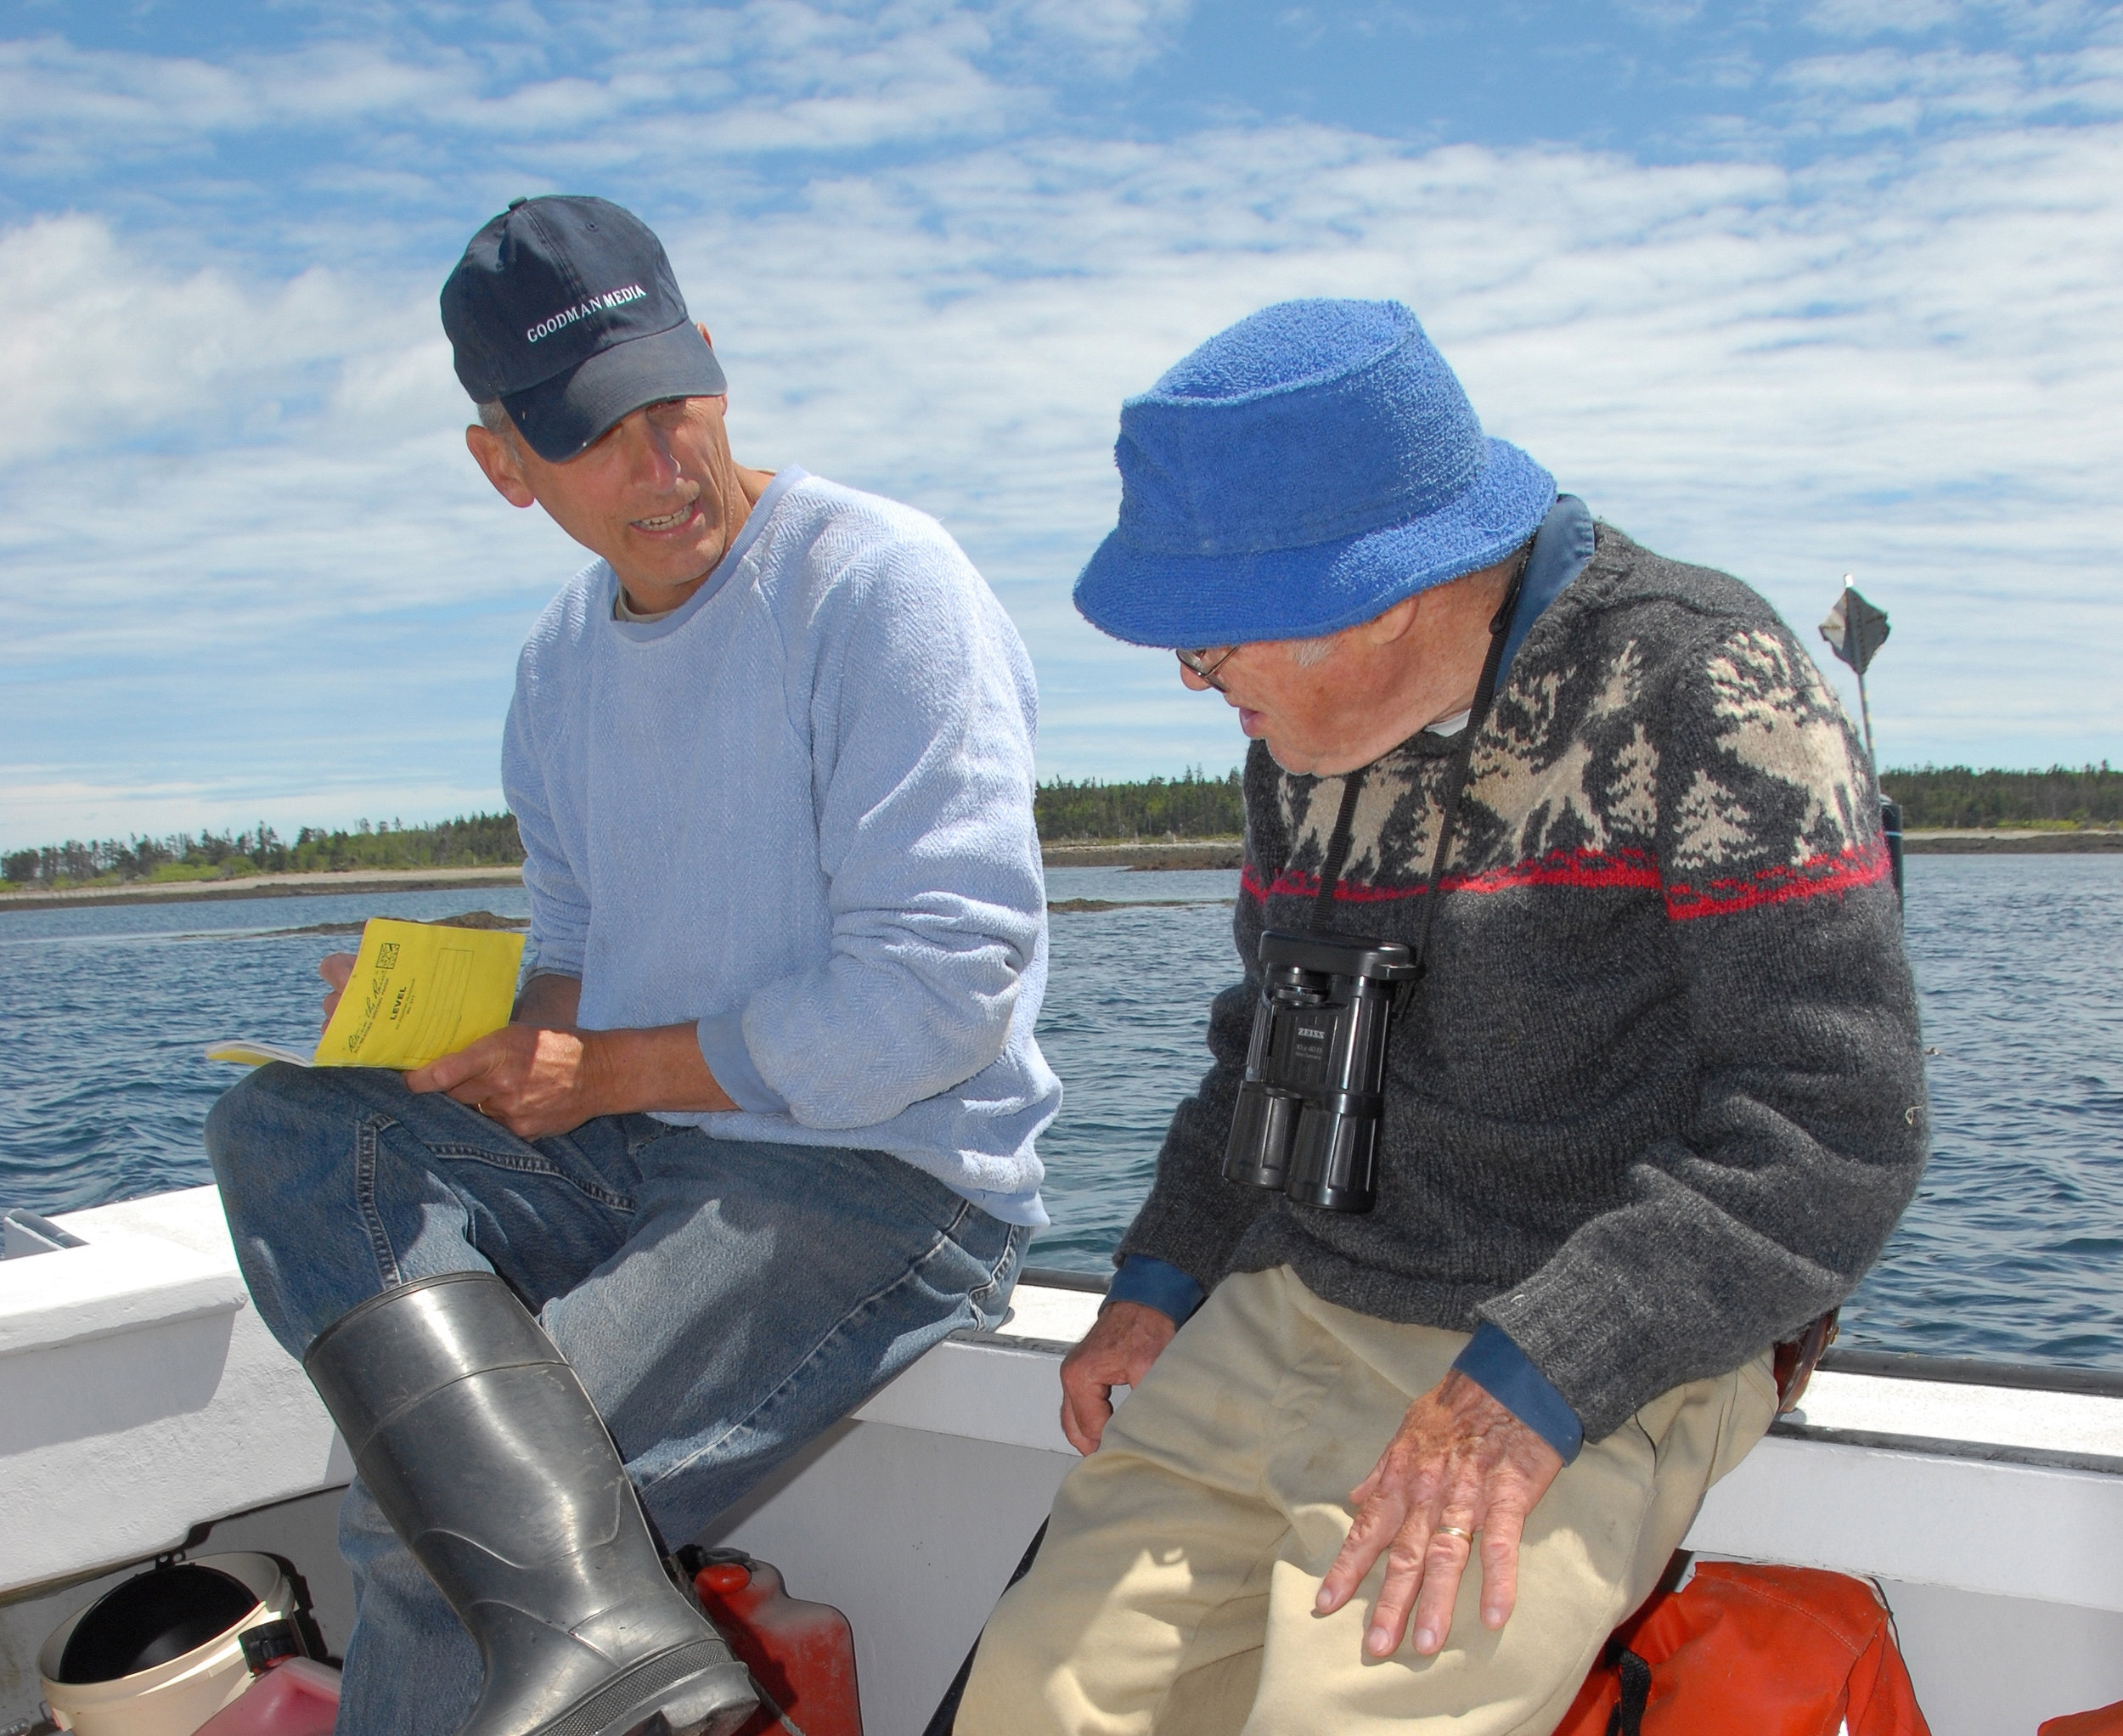 Two authors and Kent Island Directors in 2007, Bob Mauck (L) and Chuck Huntington. Photo by another Kent Island Director, Ed Minot.